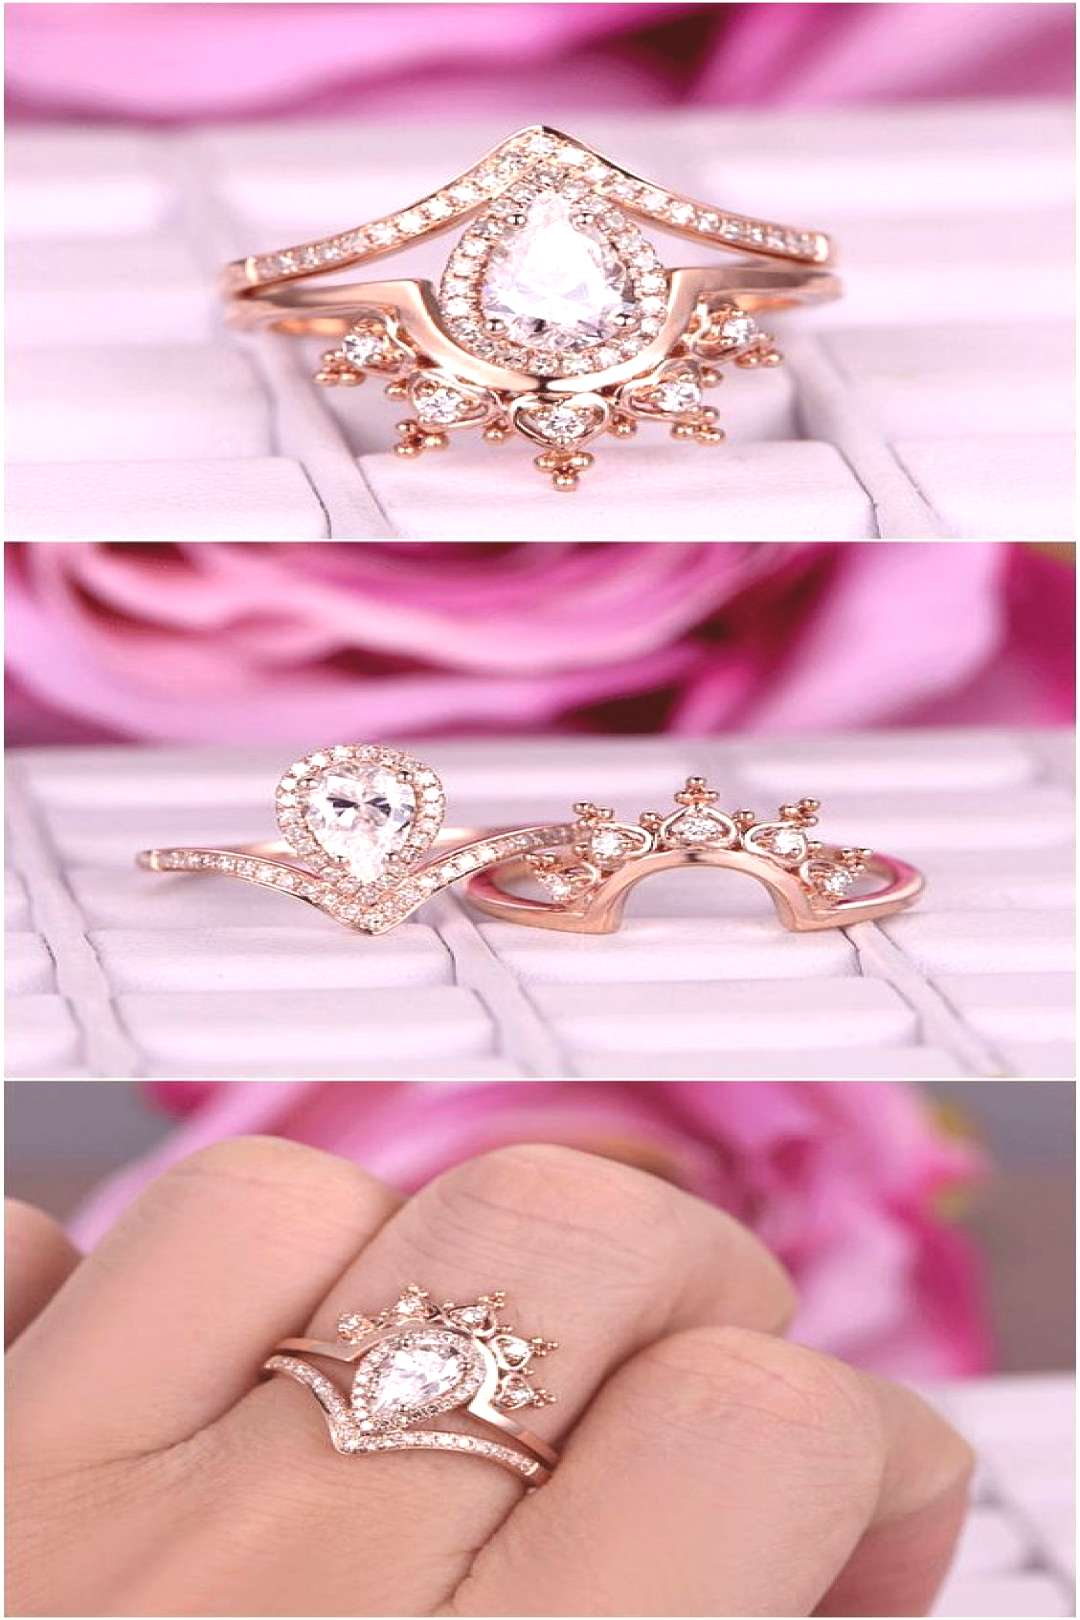 Pear Shaped Moissanite Engagement Ring Set 14k Rose Gold Diamond Wedding Band Vintage Crown Antique